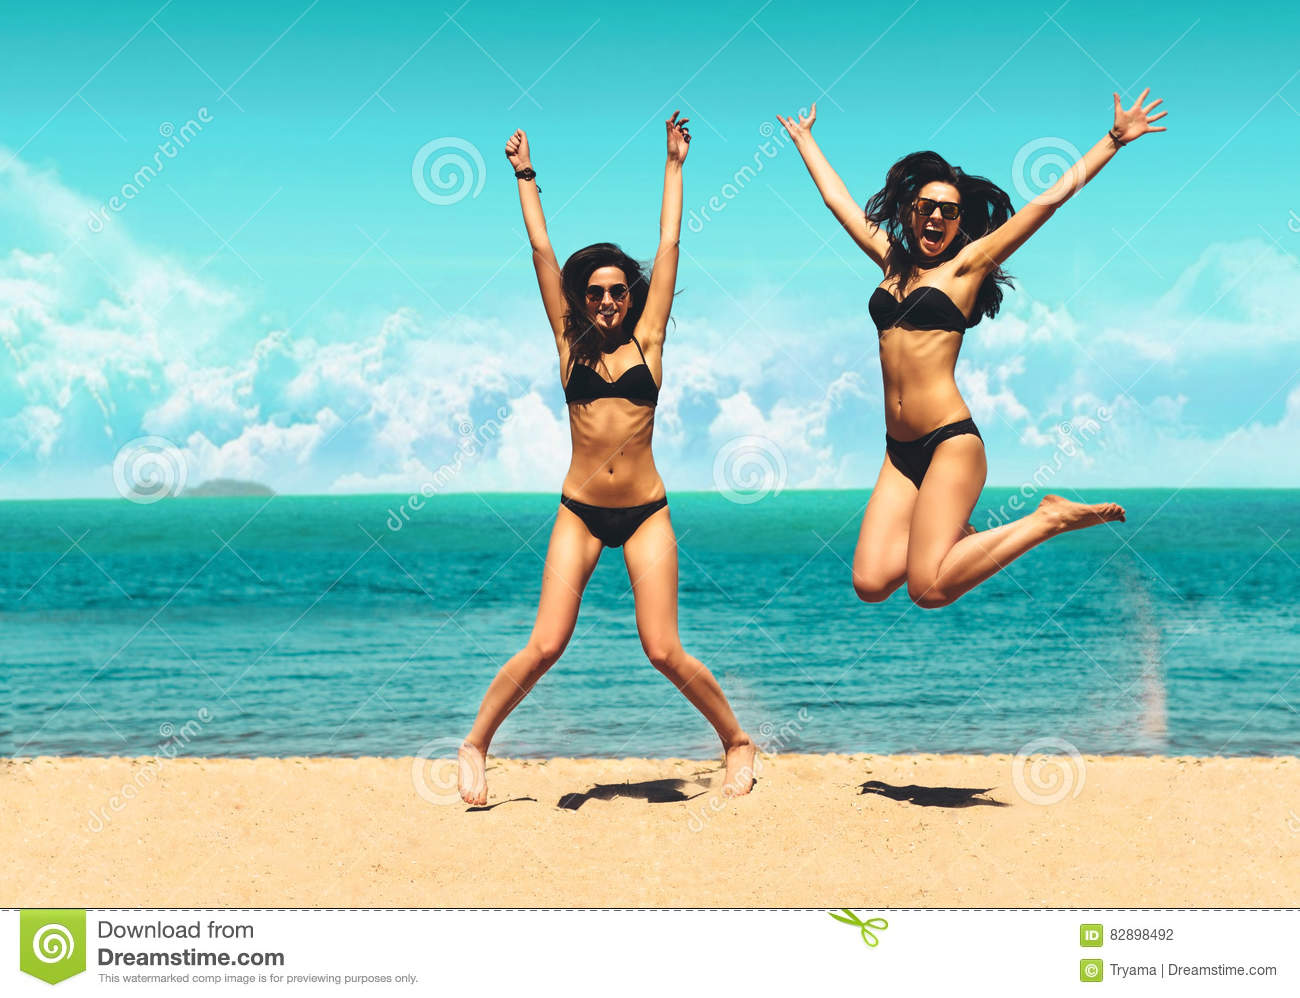 Two Attractive Girls In Bikinis Jumping On The Beach Best Friends Having Fun Summer Vacation Holiday Lifestyle Happy